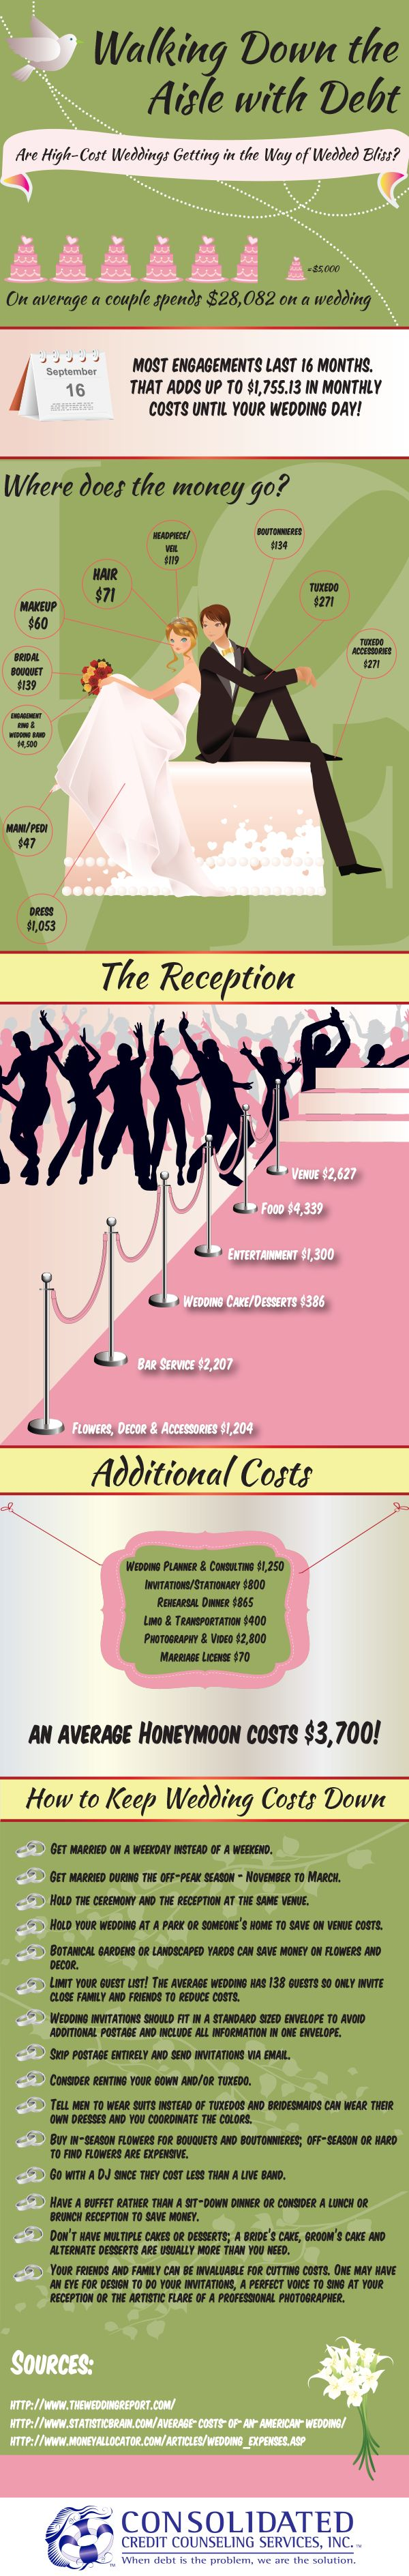 If you're engaged and getting ready to plan your wedding this helpful Wedding Infographic from Consolidated Credit can give you some much needed insight into what your wedding is really going to cost by the time you walk down the aisle. We also give you tips on how to reduce wedding costs so you can save money and start your new life without the burden of excessive debt.